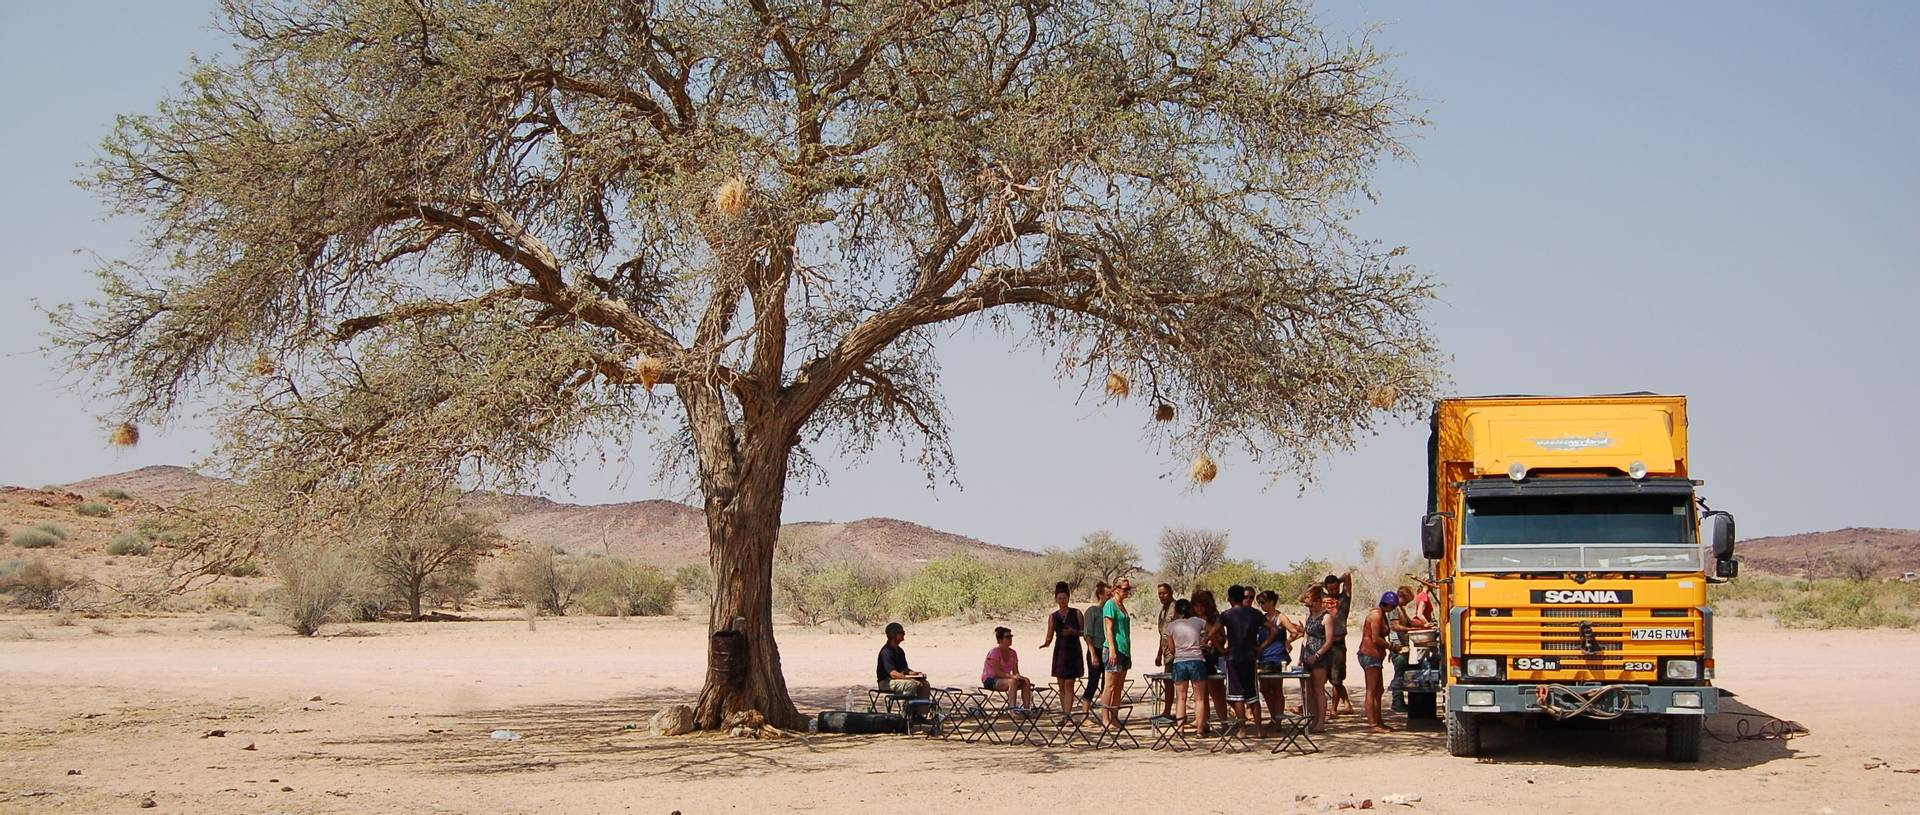 Roadside Lunch Stop In Namibia